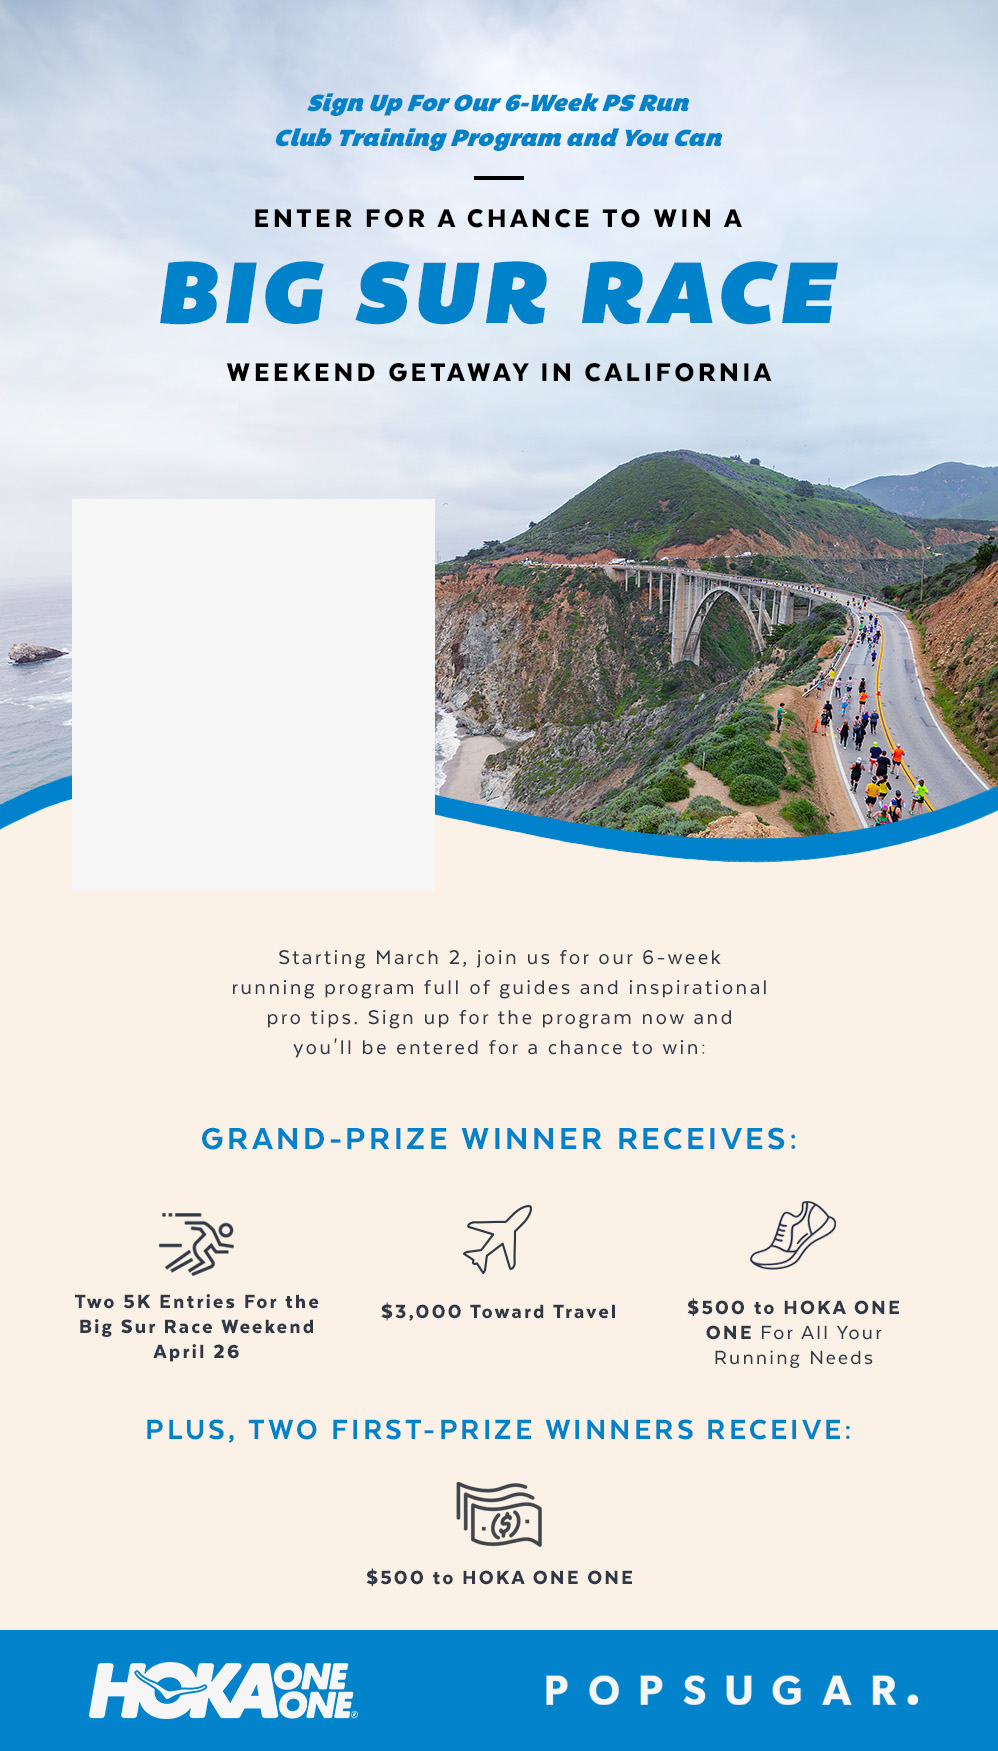 Enter For a Chance to Win a Big Sur Race Weekend Getaway